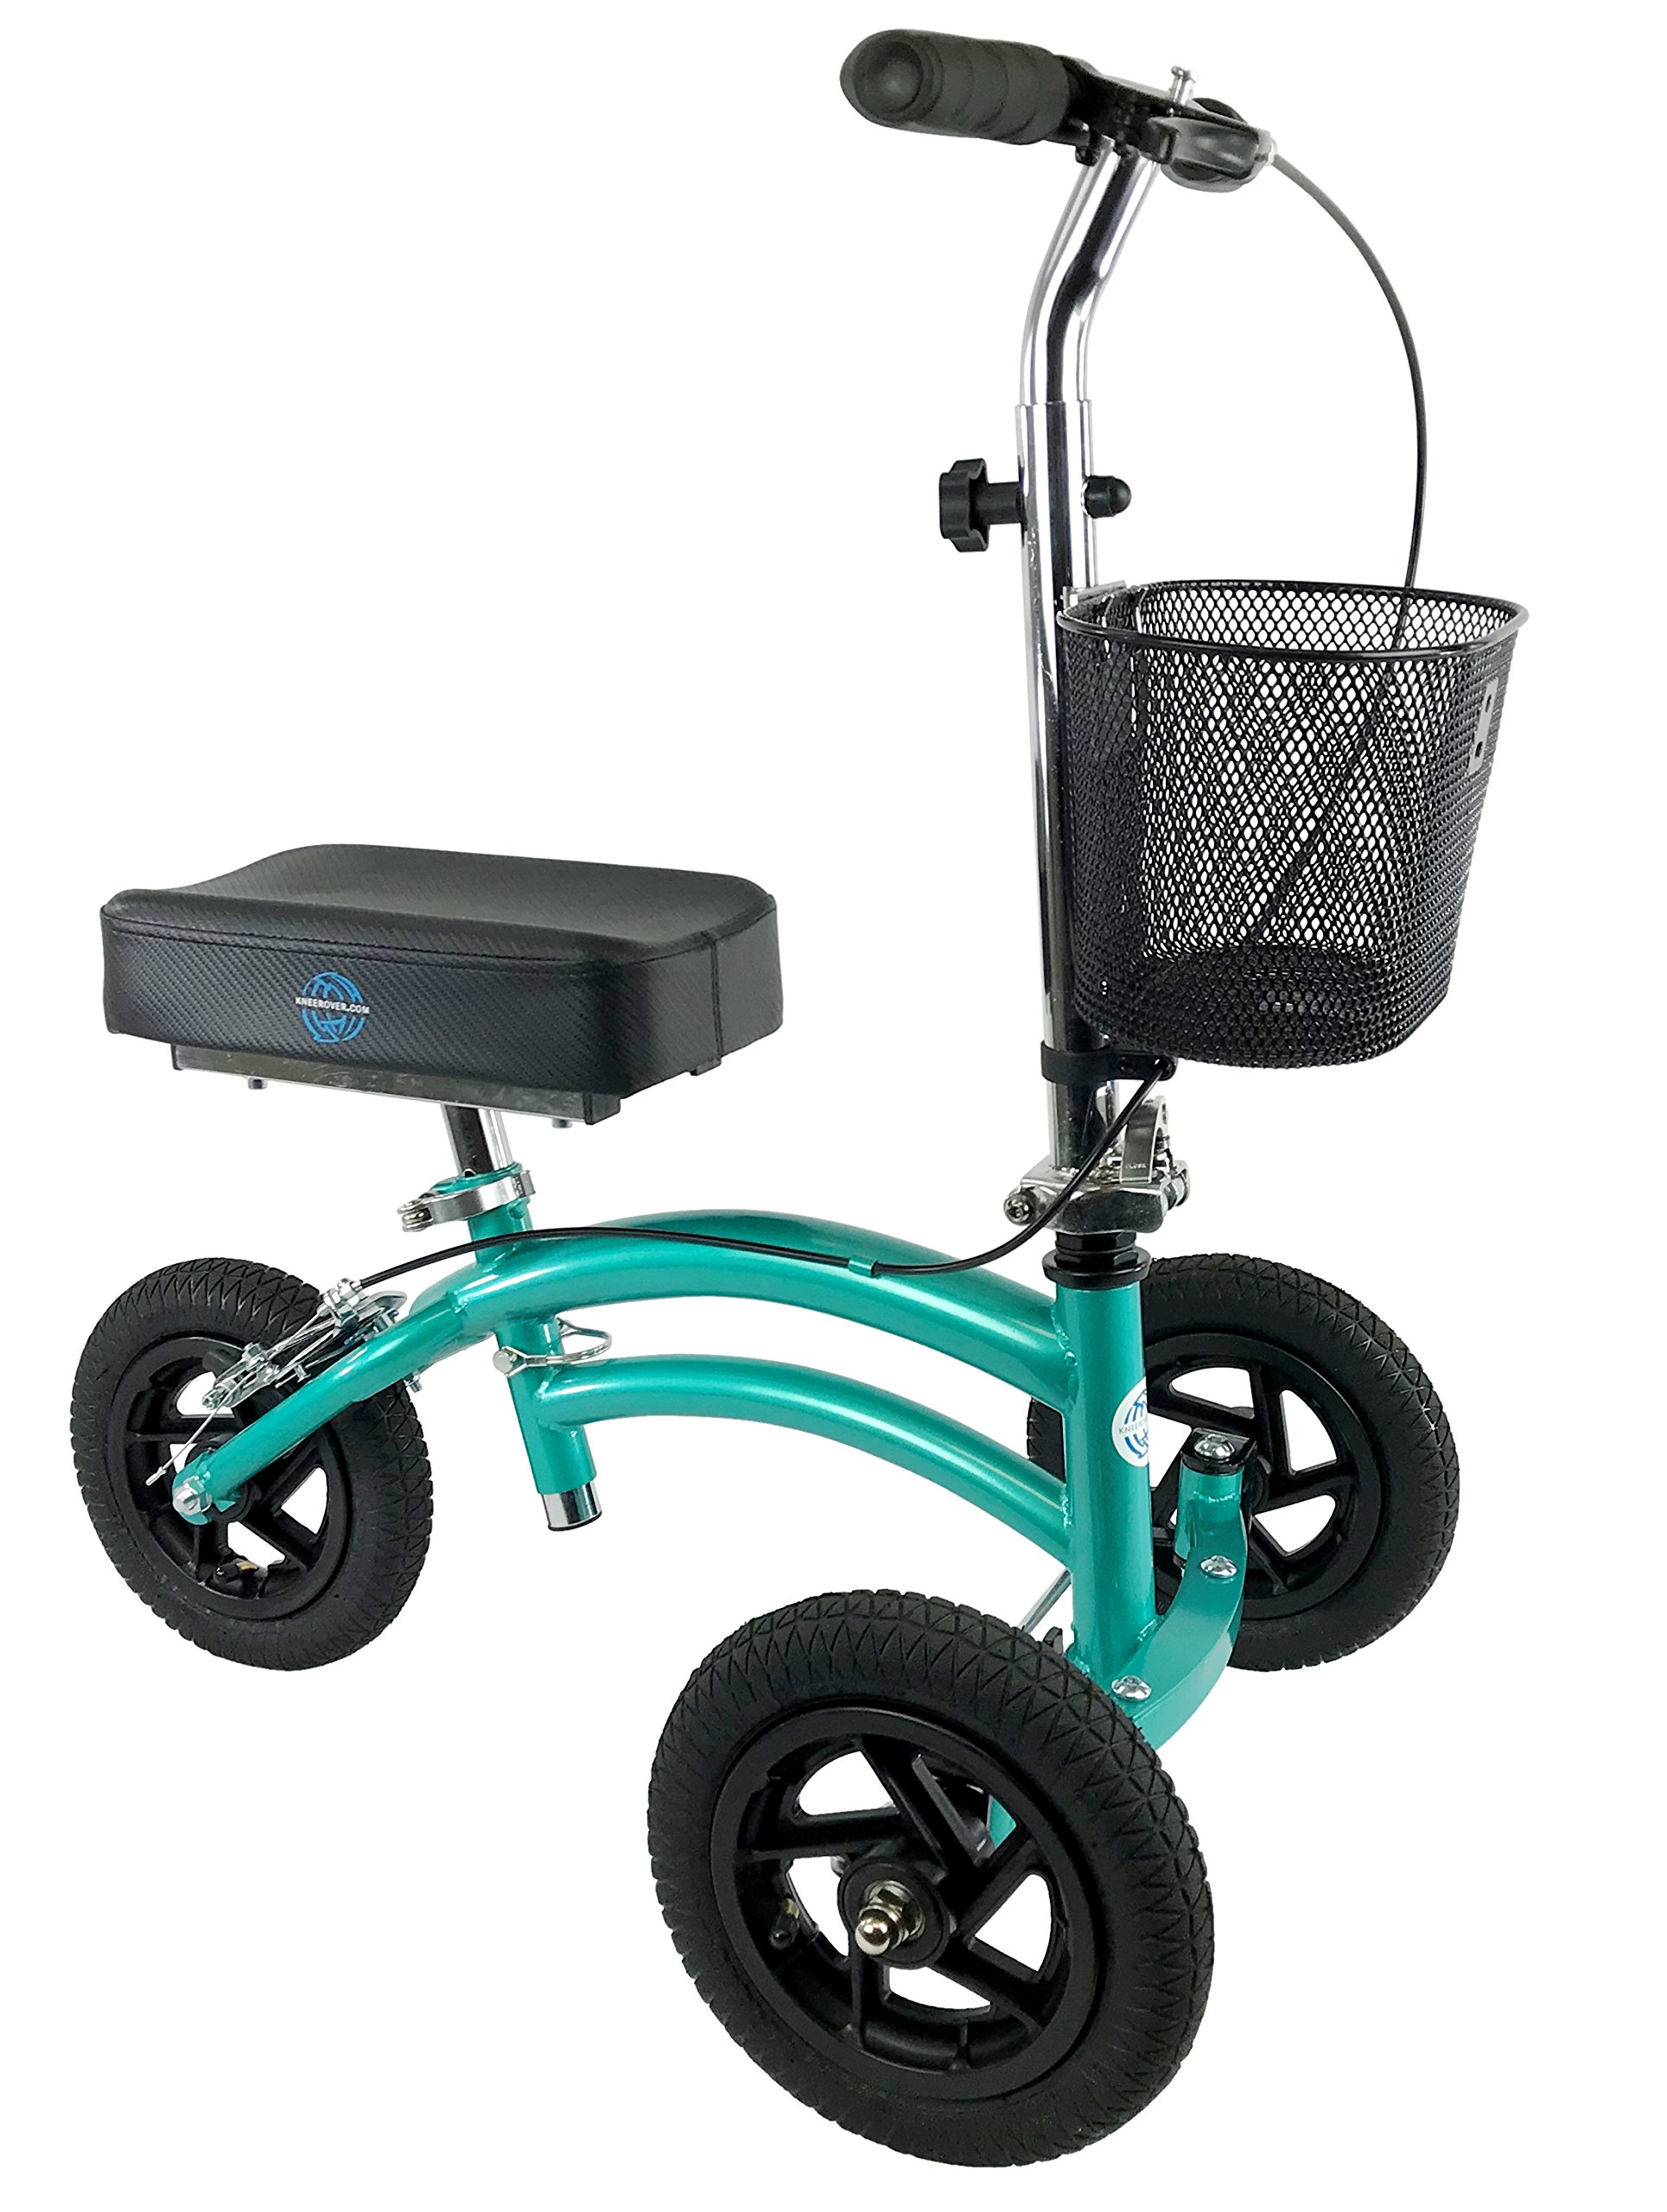 NEW Small Petite Adult All Terrain KneeRover Jr - Steerable Knee Walker Knee Scooter Crutches Alternative in Coastal Teal